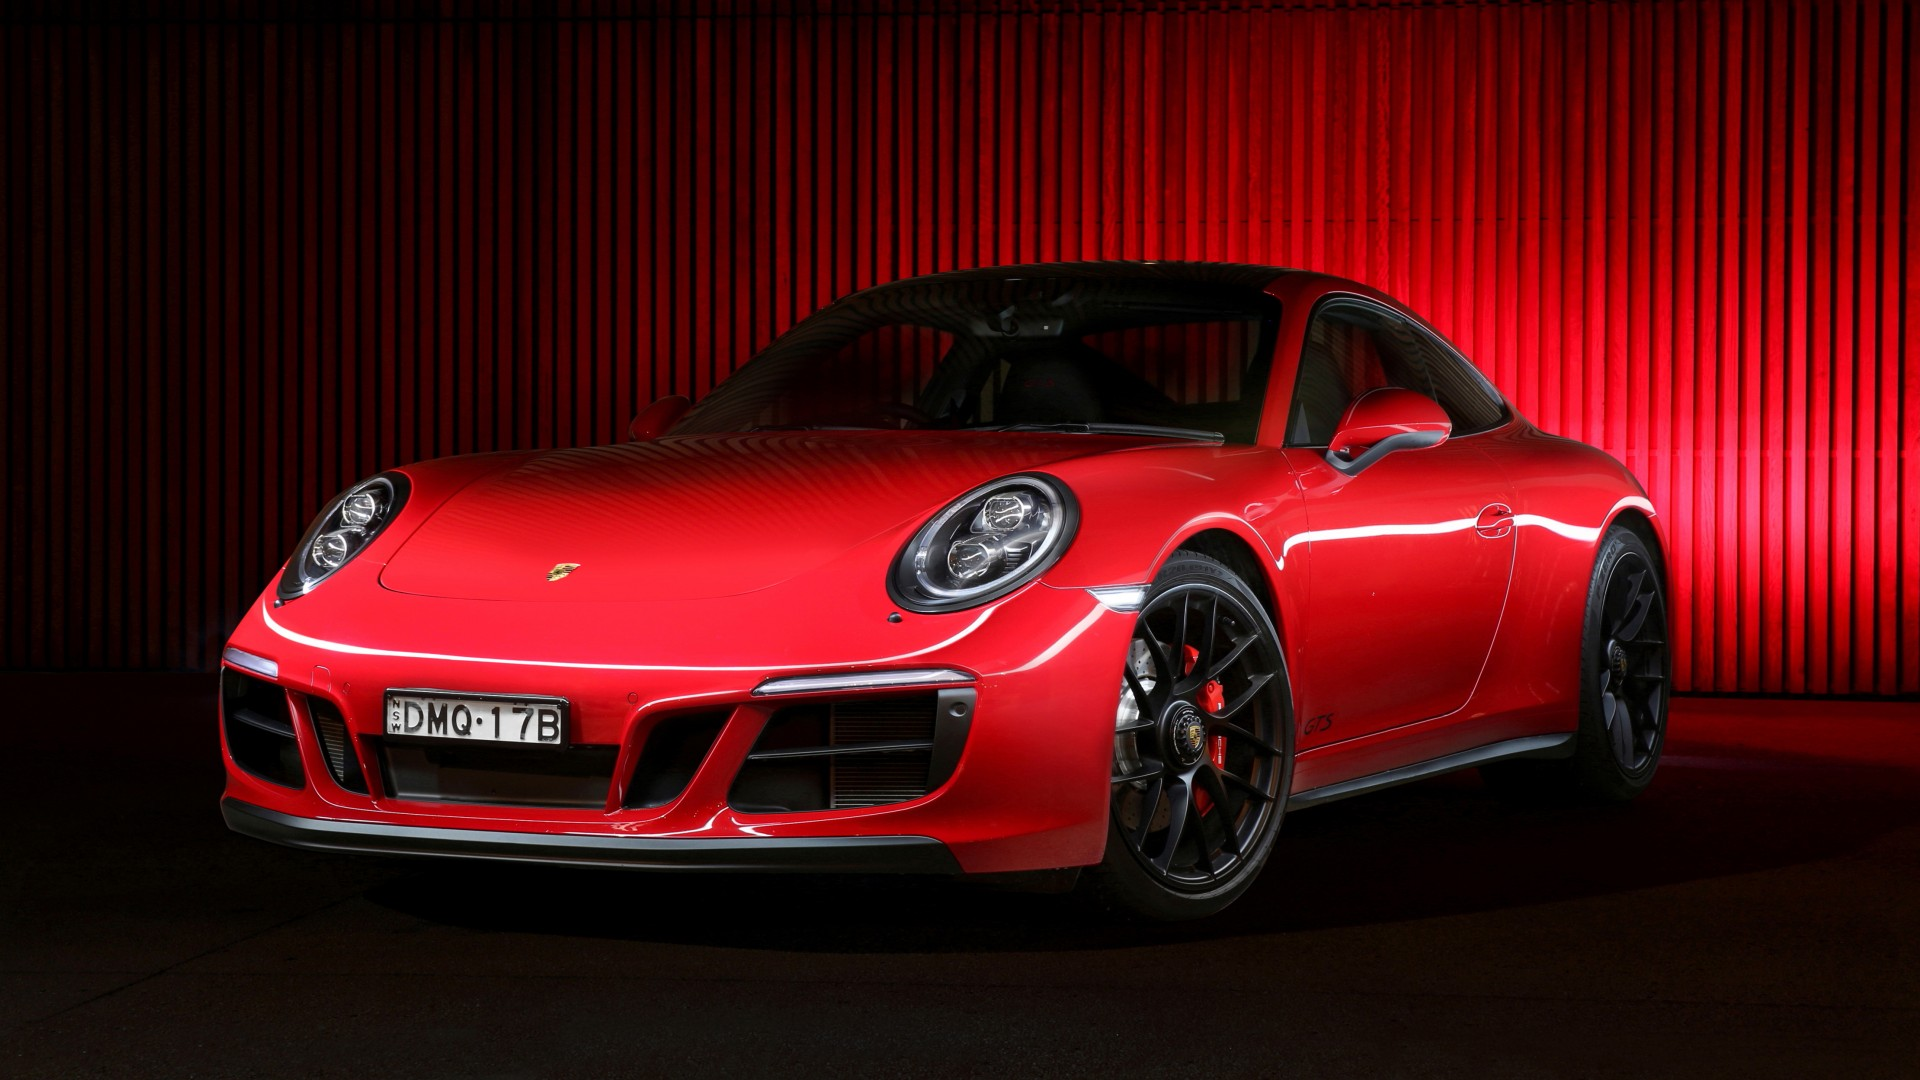 Love Wallpaper Iphone X 2017 Porsche 911 Carrera 4 Gts Coupe 4k Wallpapers Hd